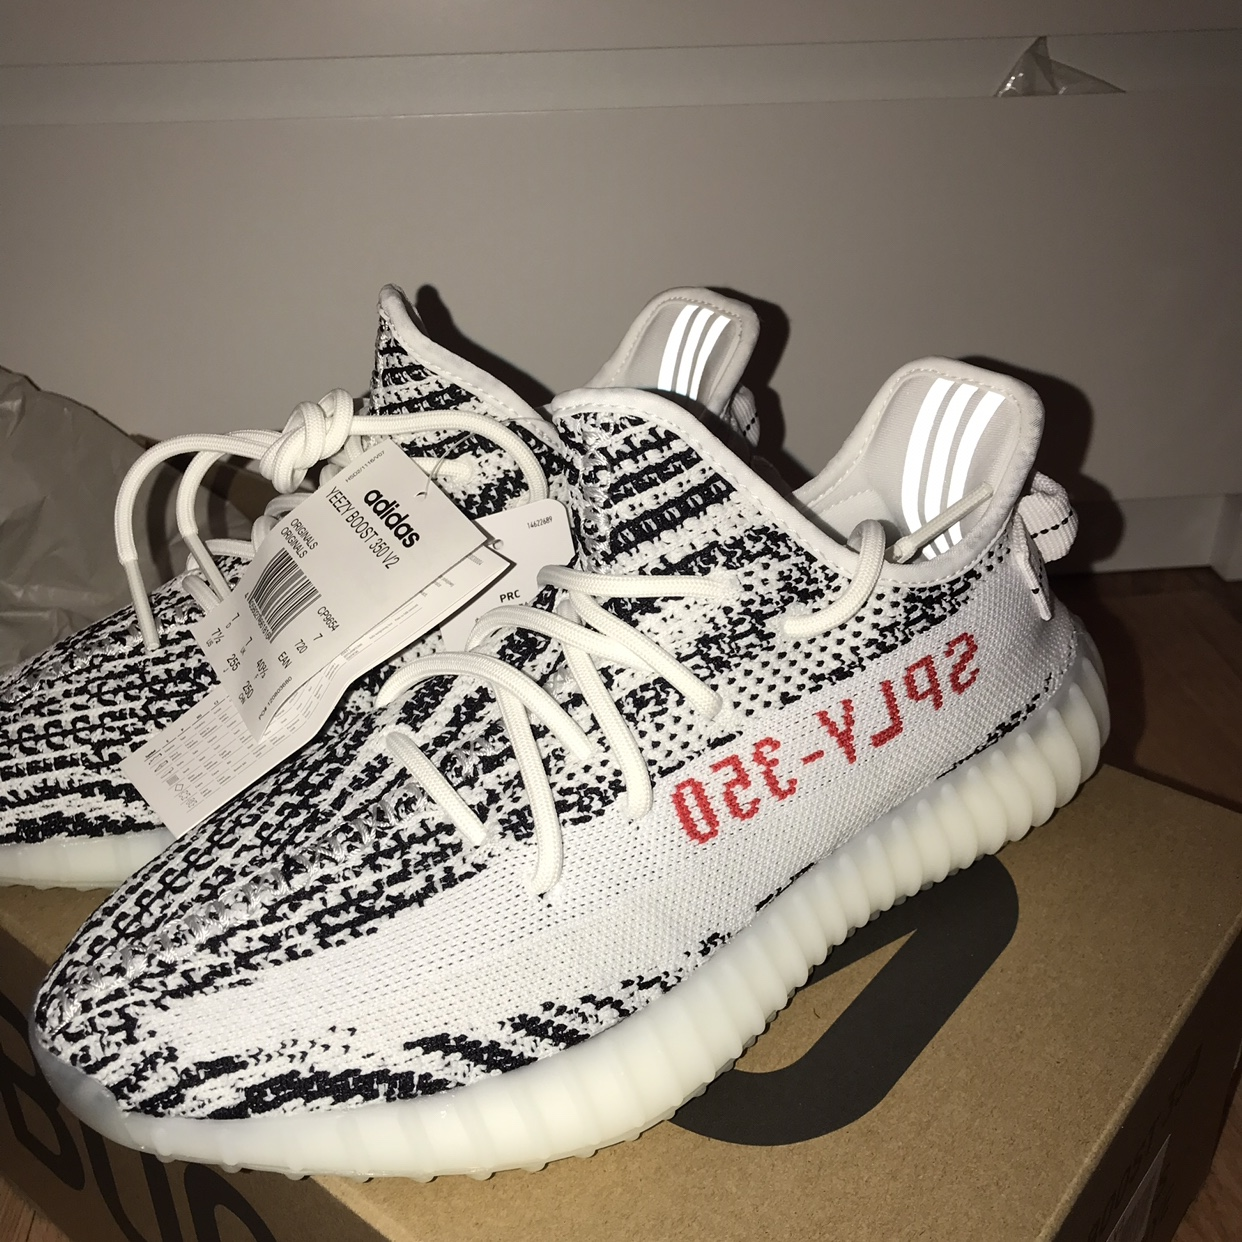 Details about Adidas Yeezy Boost 350 V2 Zebra Size 11 (Never Worn)